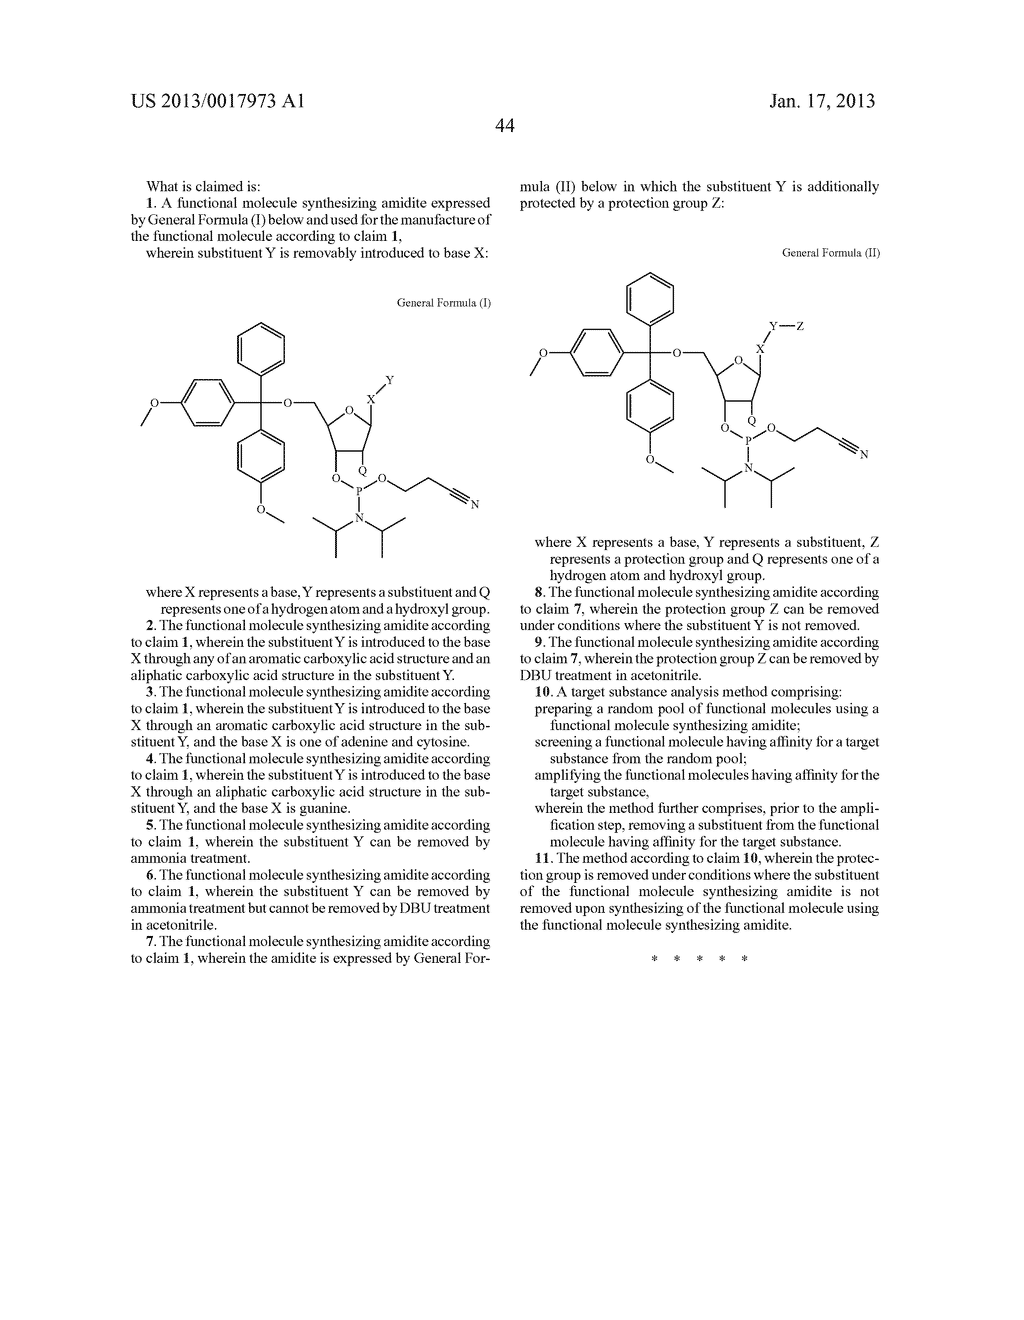 FUNCTIONAL MOLECULE, FUNCTIONAL MOLECULE SYNTHESIZING AMIDITE AND TARGET     SUBSTANCE ANALYSIS METHOD - diagram, schematic, and image 94